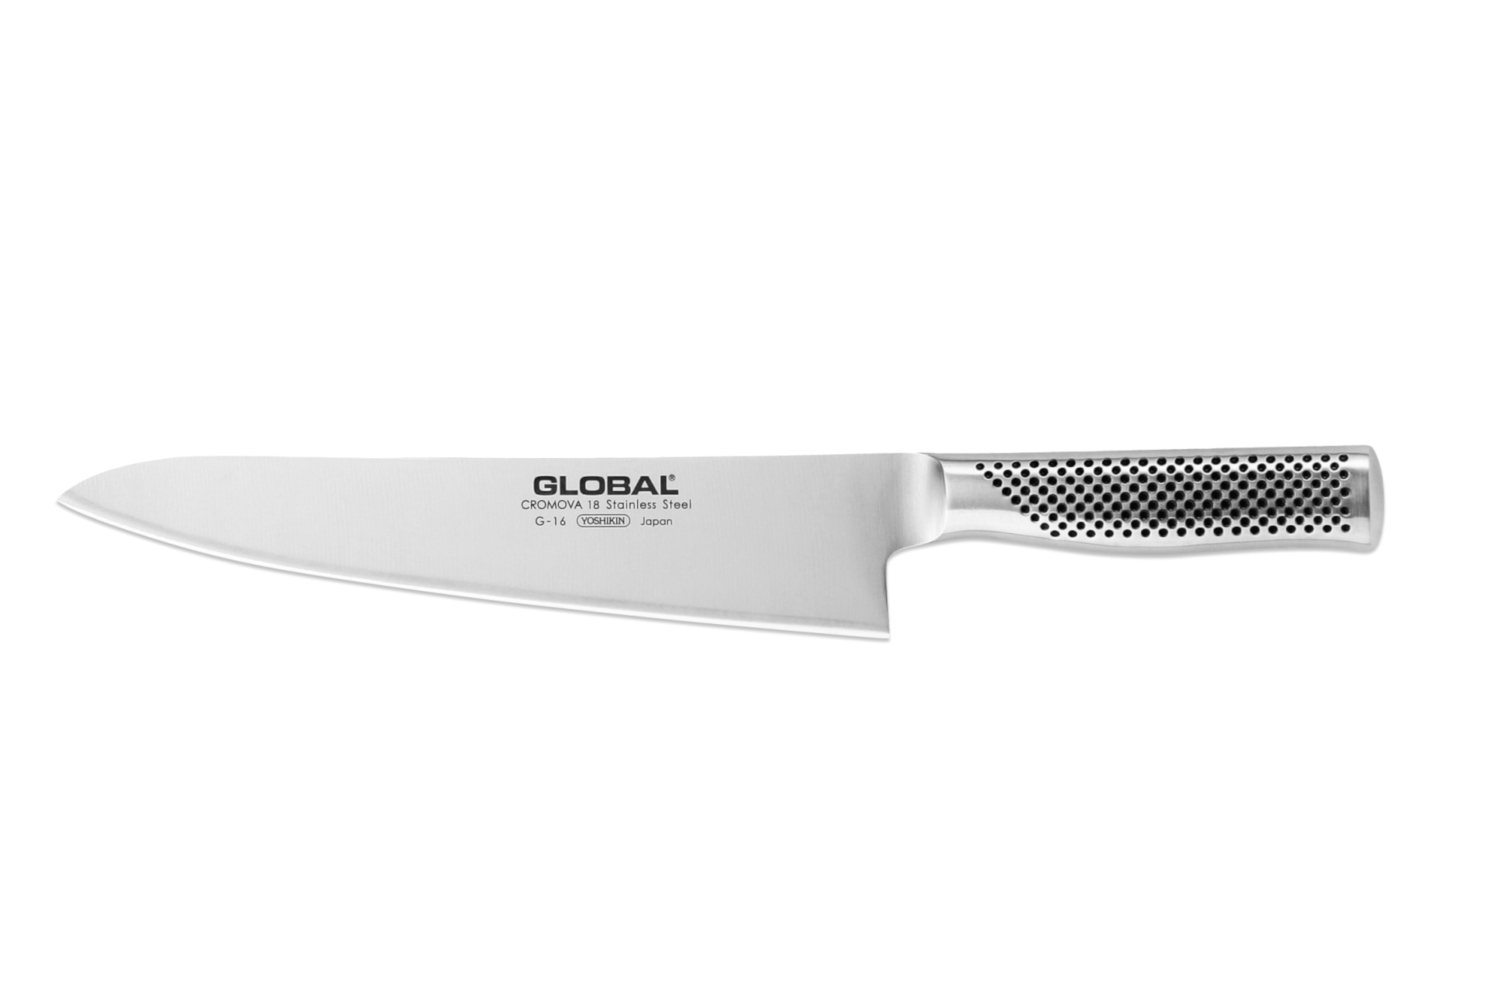 Global 10 inch Chef's Knife